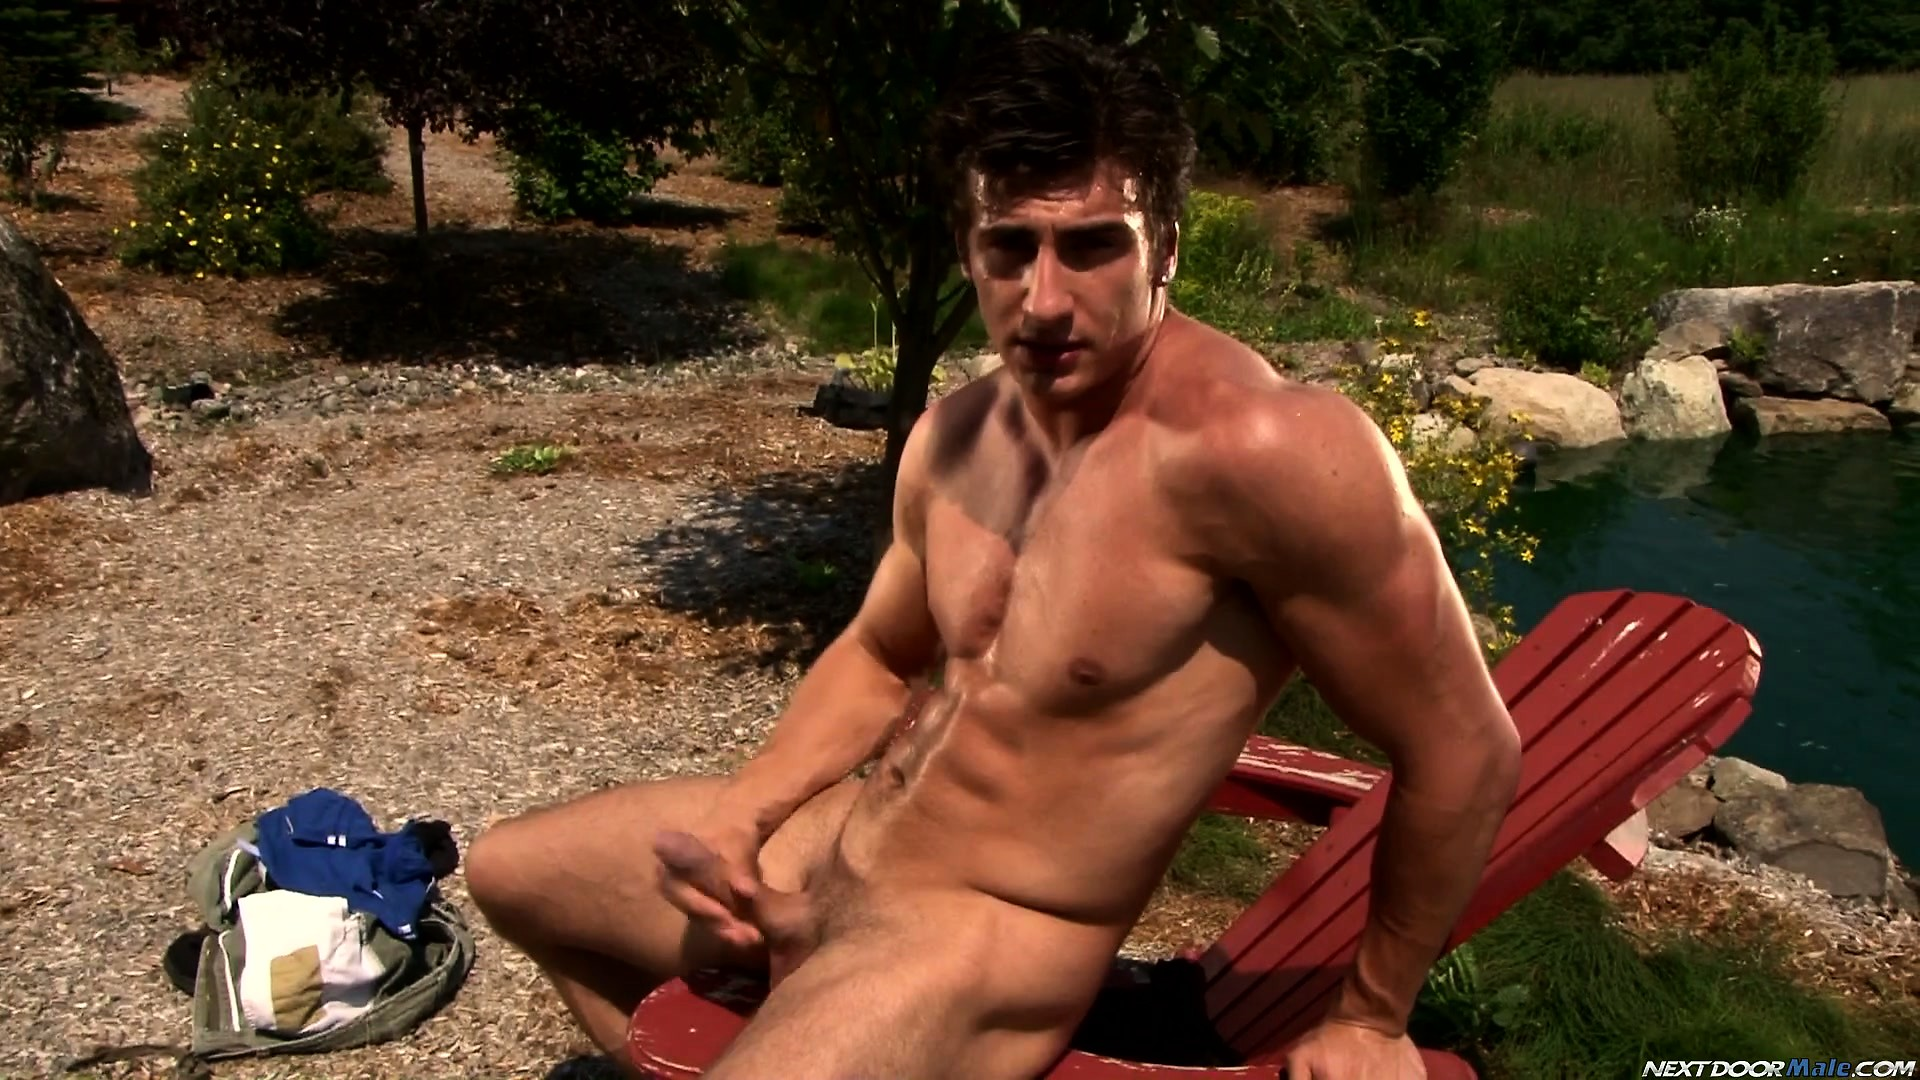 Porno Video of Mario Torrez Is A Hot Gay Latino With A Mouthwatering Tight Butt